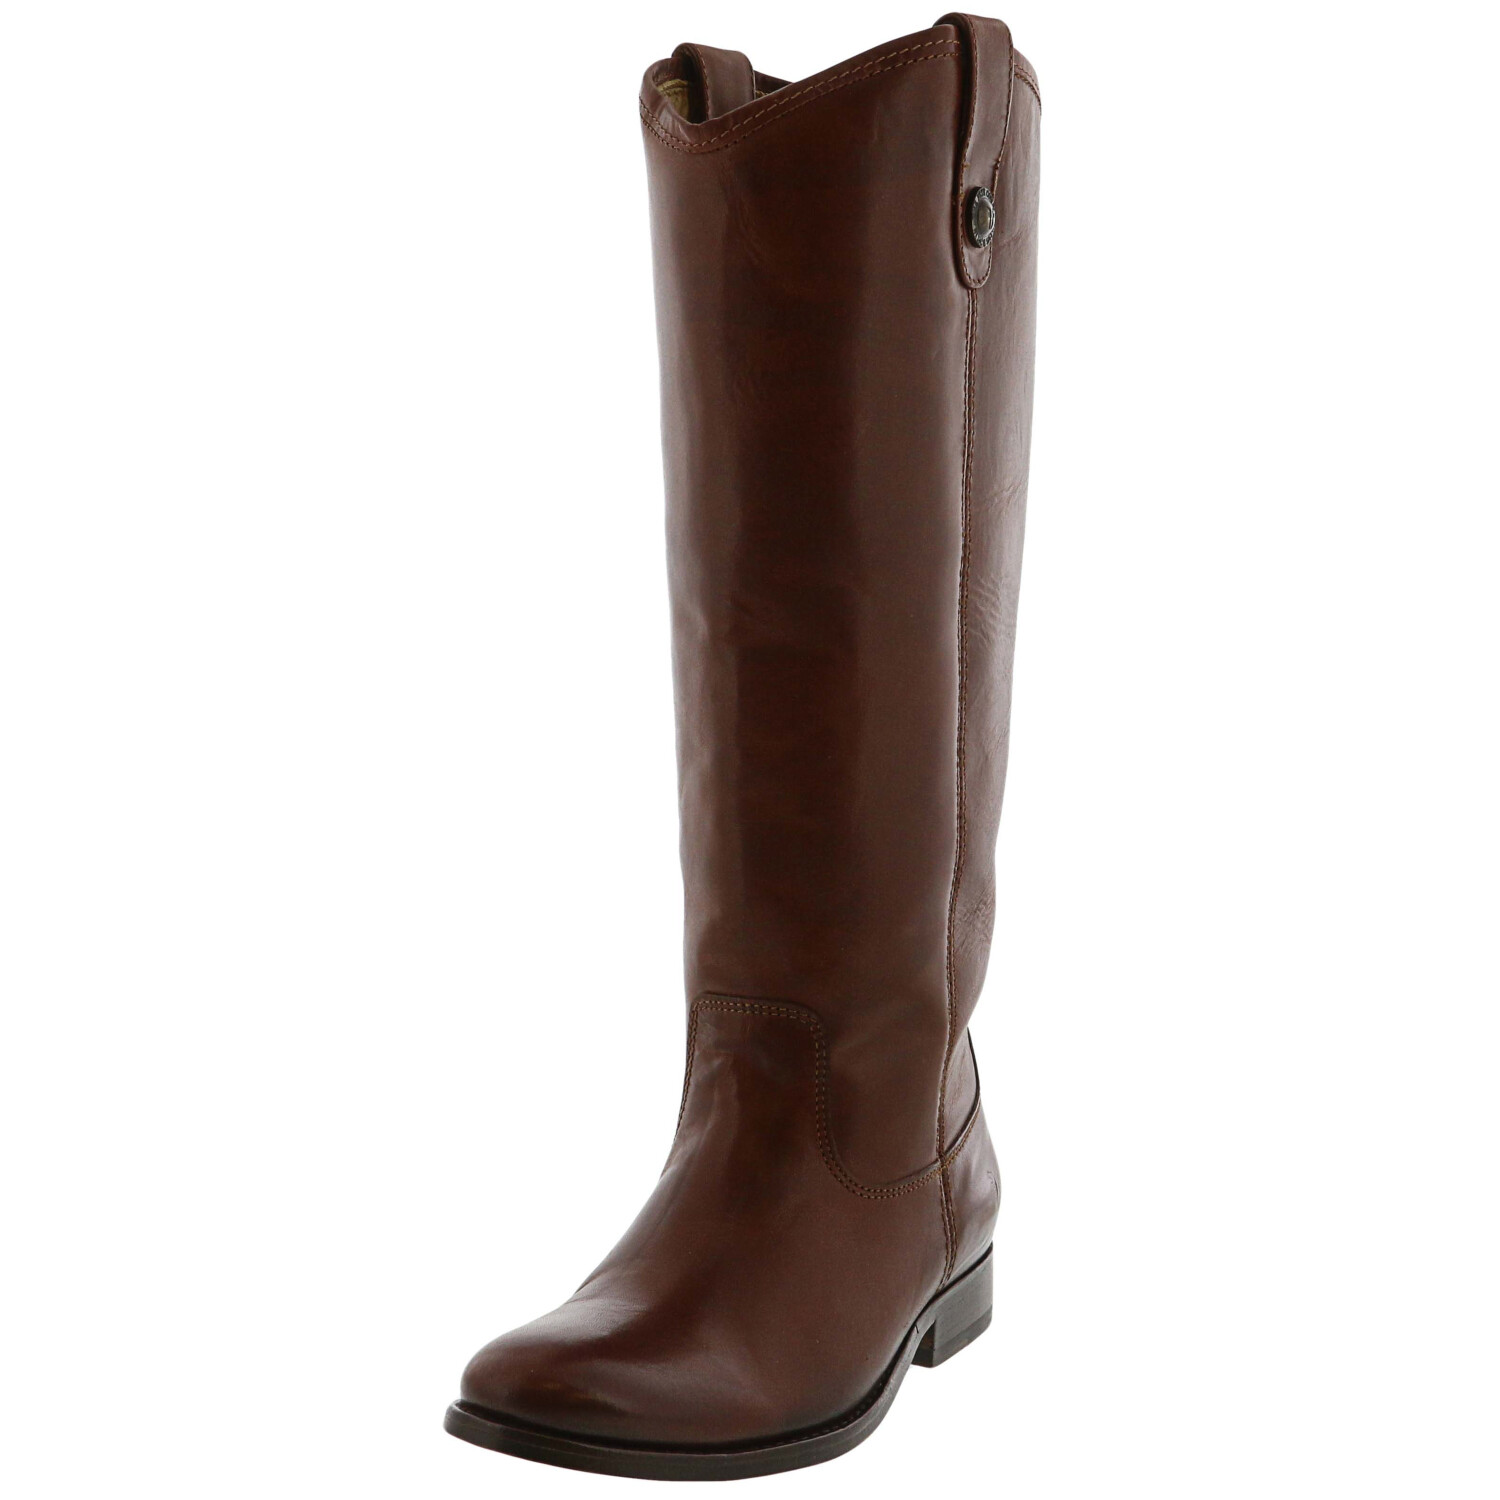 Frye Women's Mellissa Button Cognac Knee-High Leather Boot - 5.5M